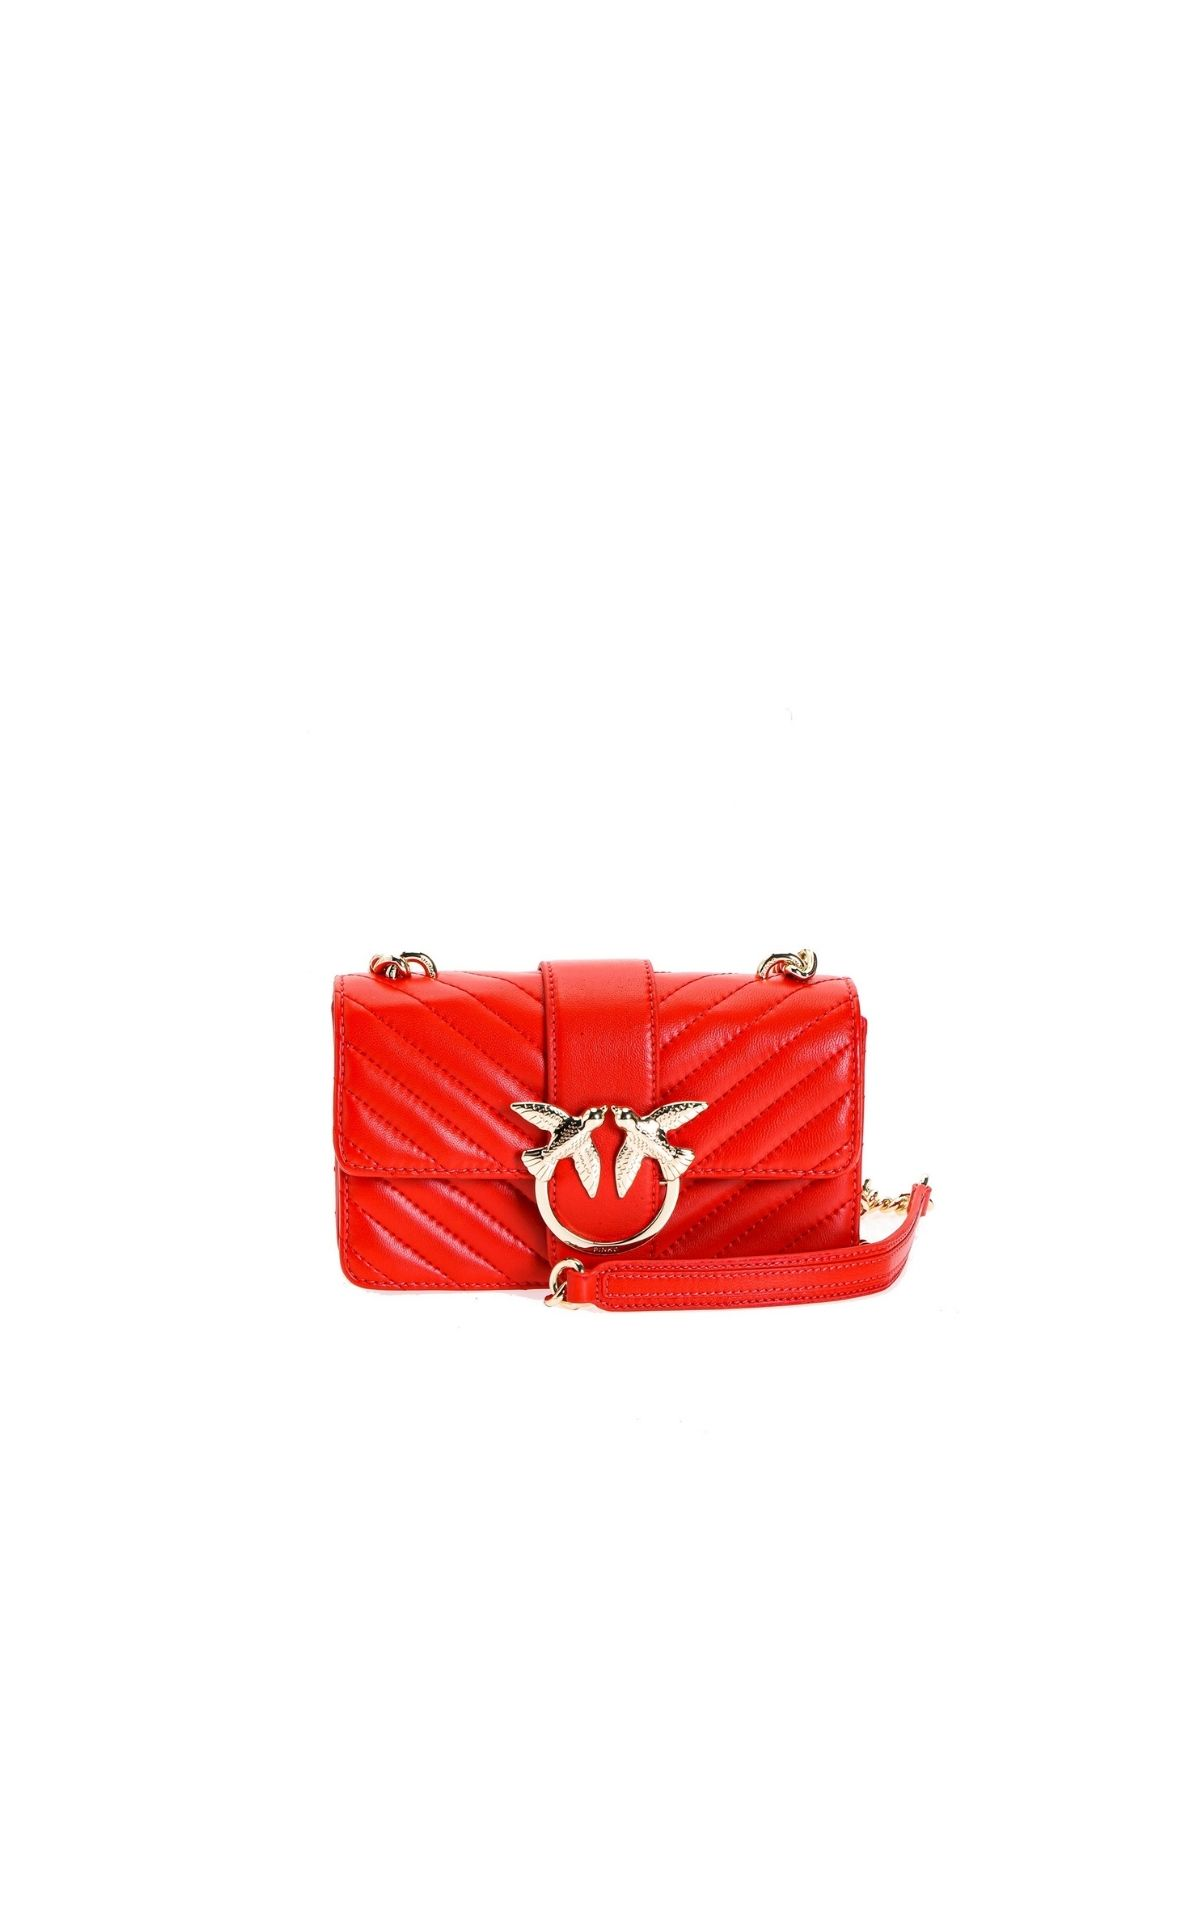 Pinko Red quilted Love bag | La Vallée Village